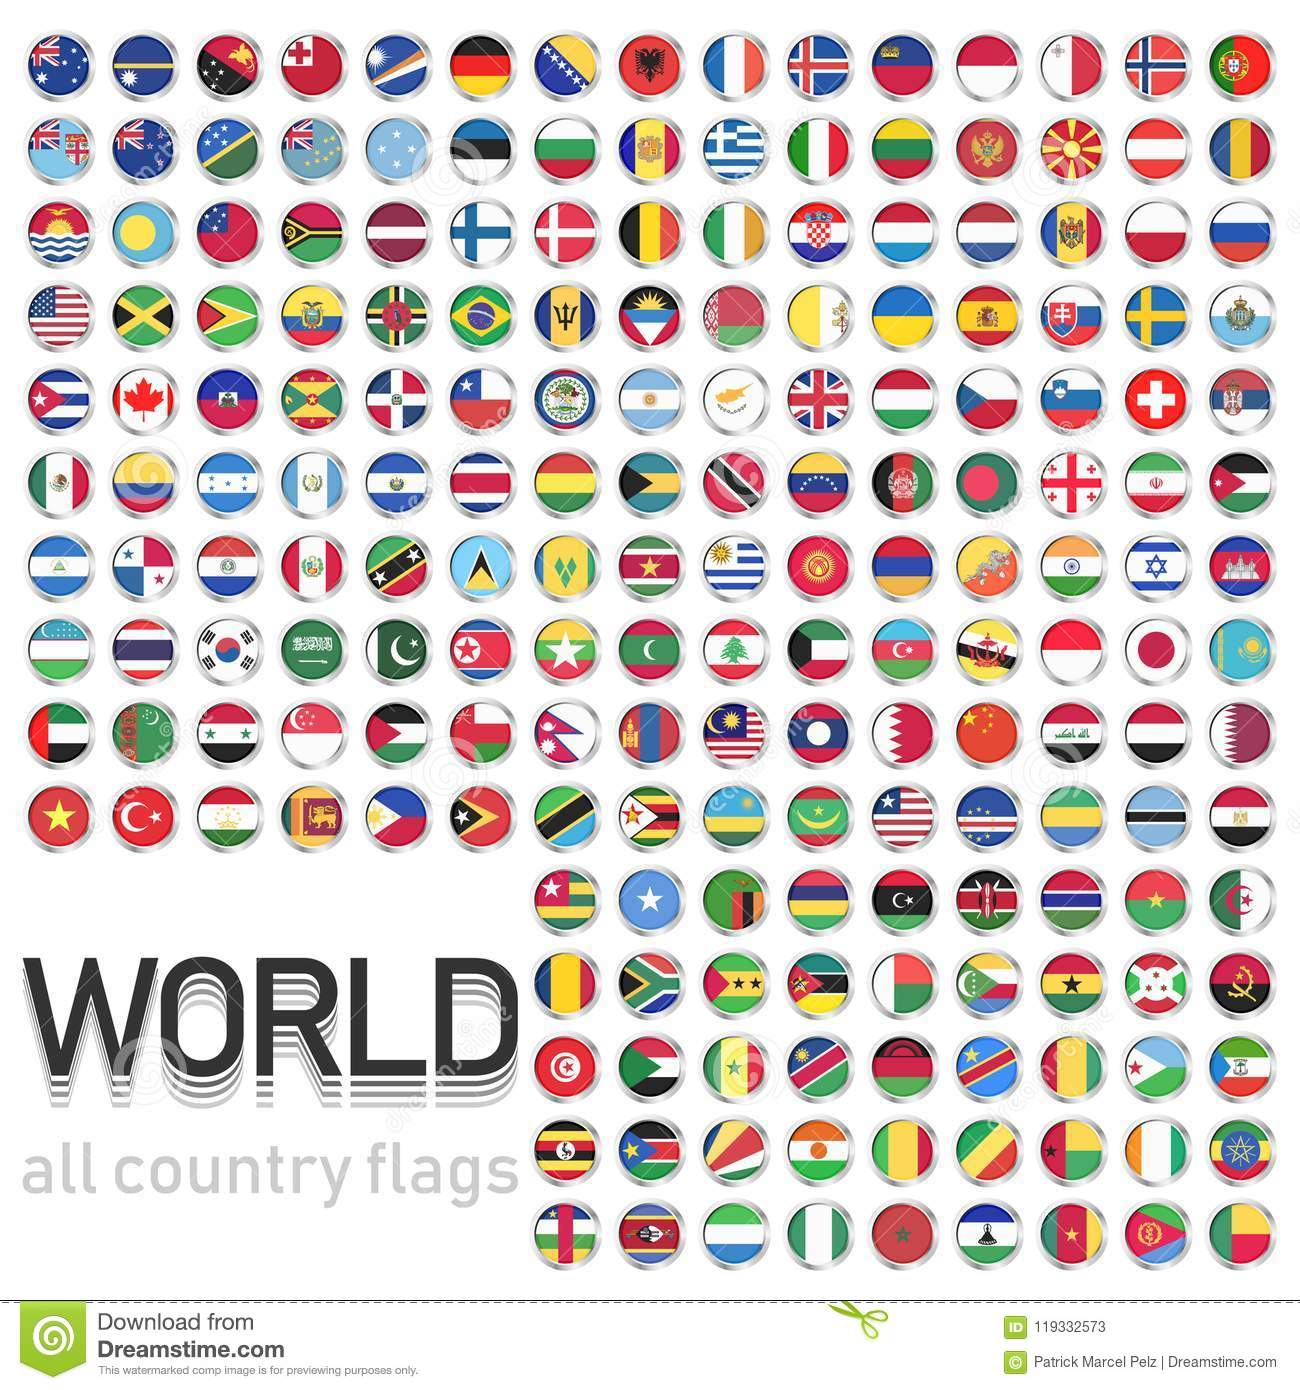 Countries flags around the world in PDF download for free